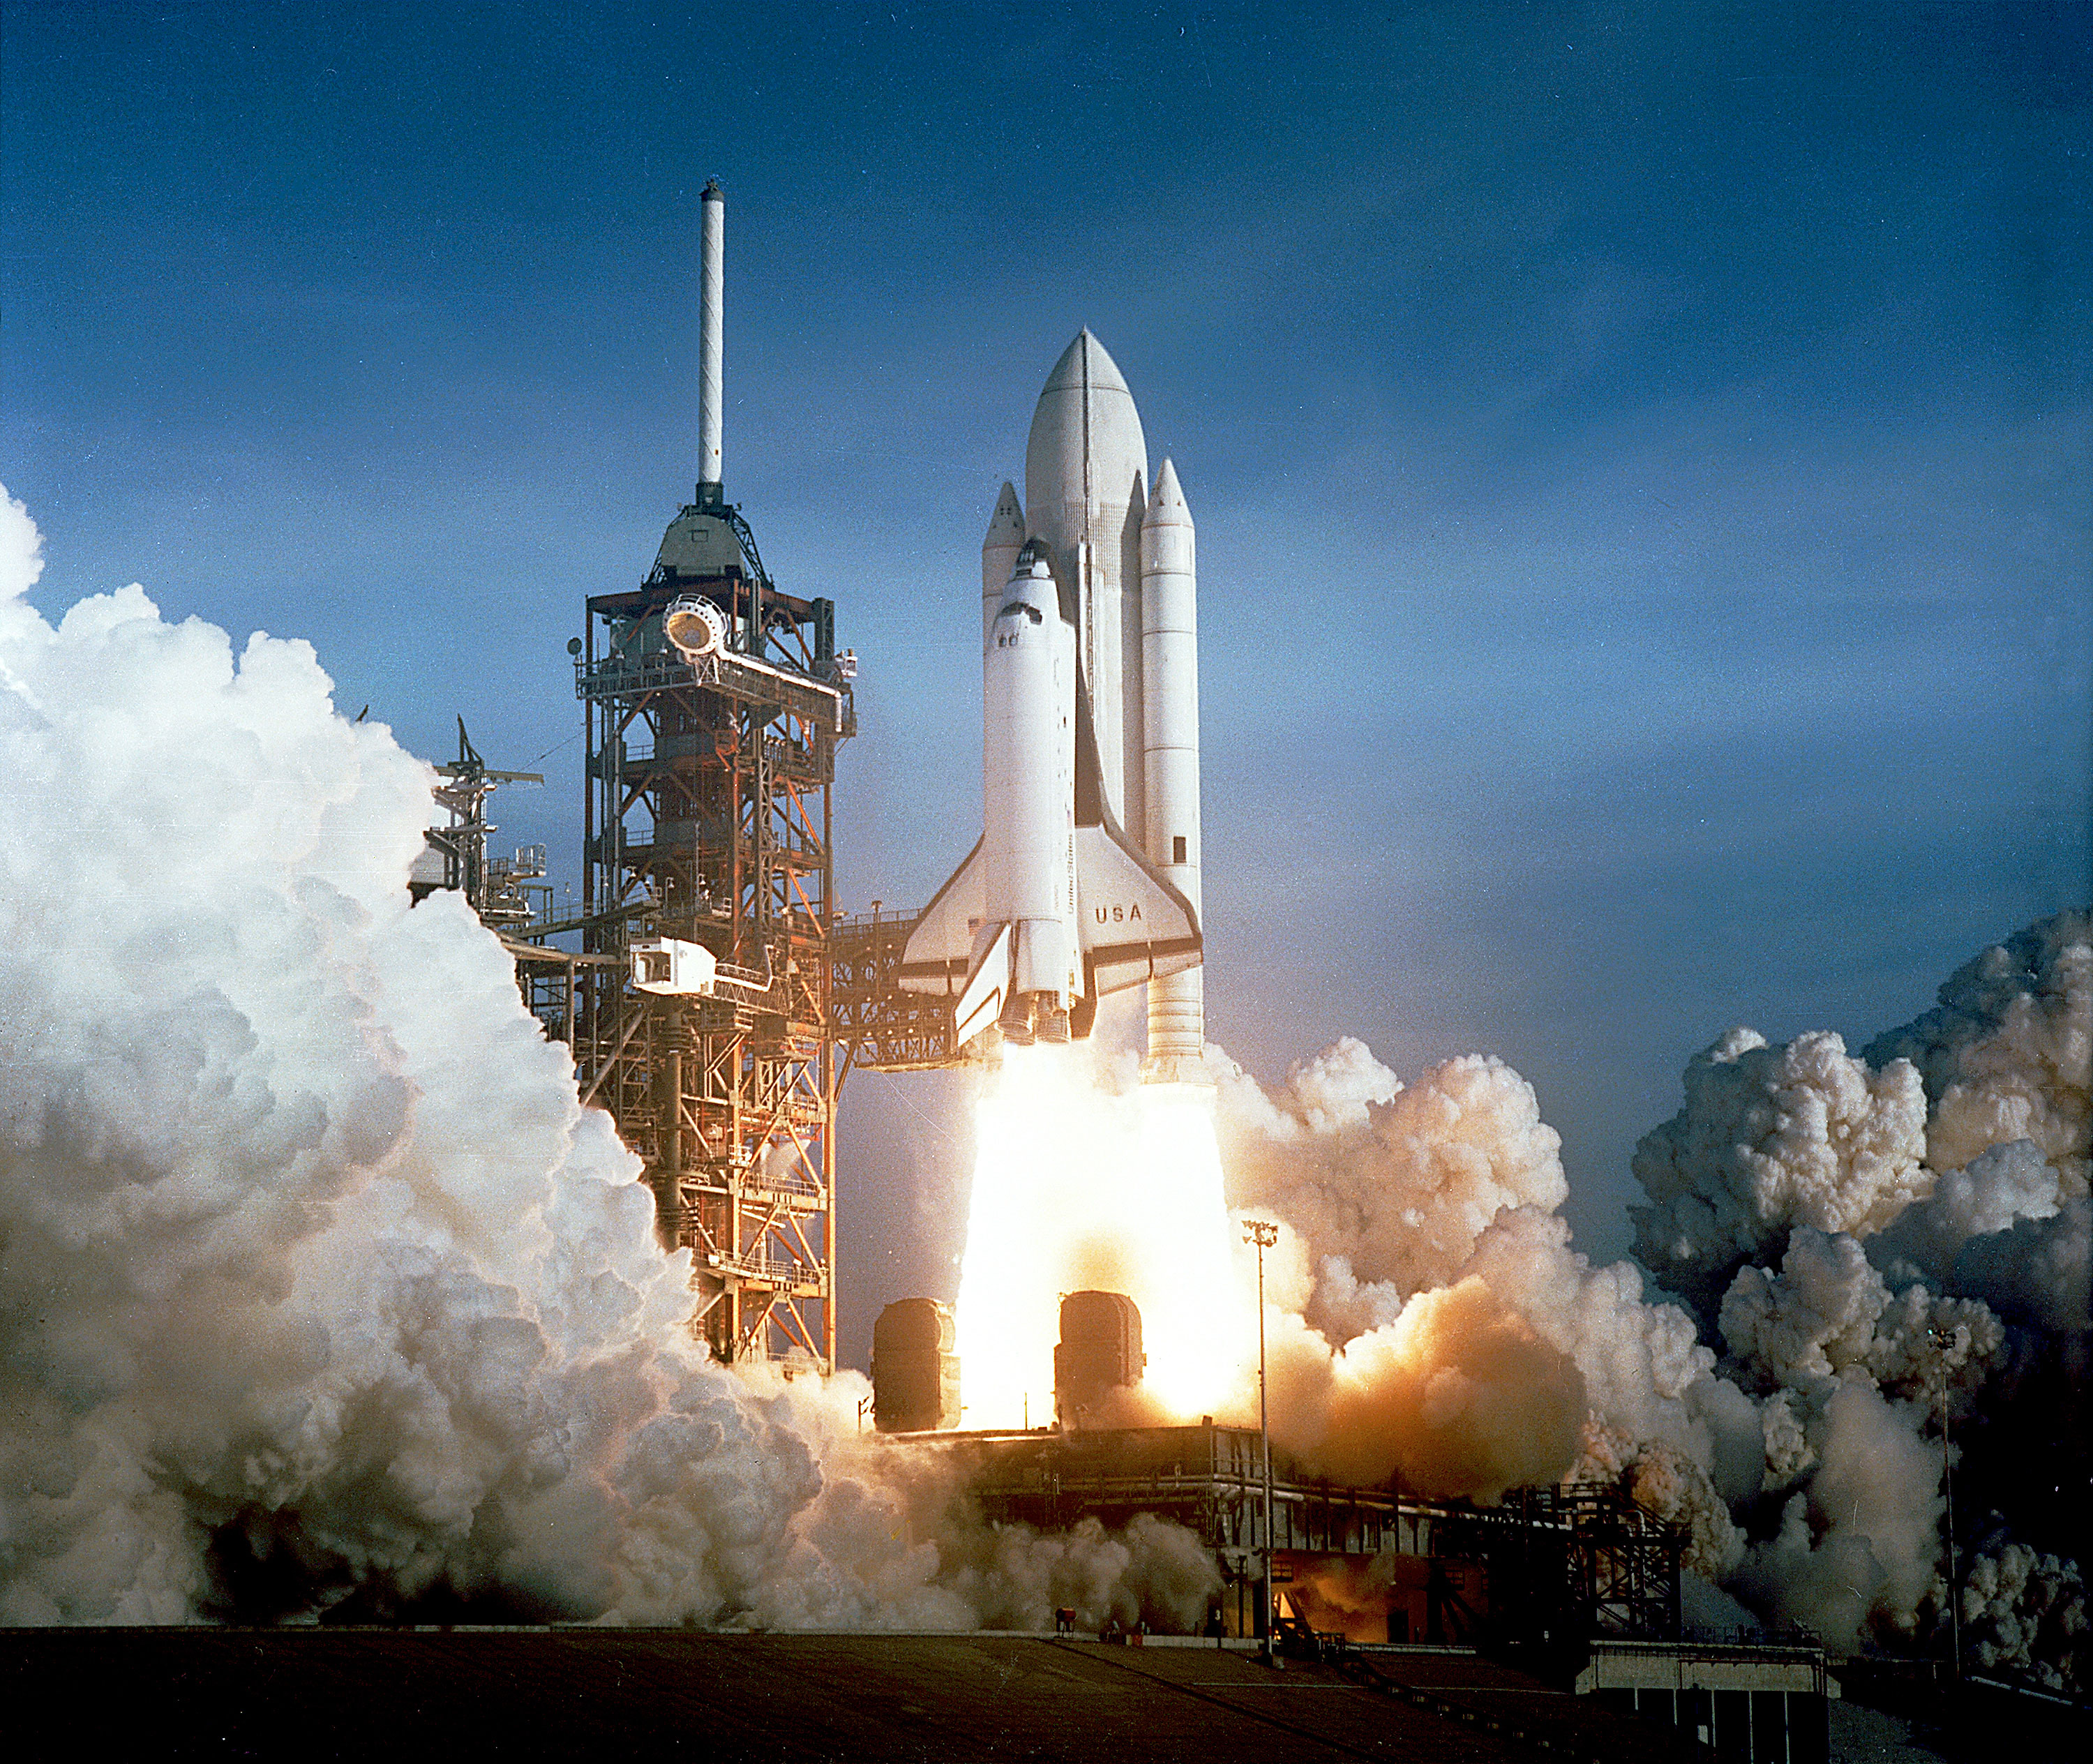 nasa first space mission - photo #13